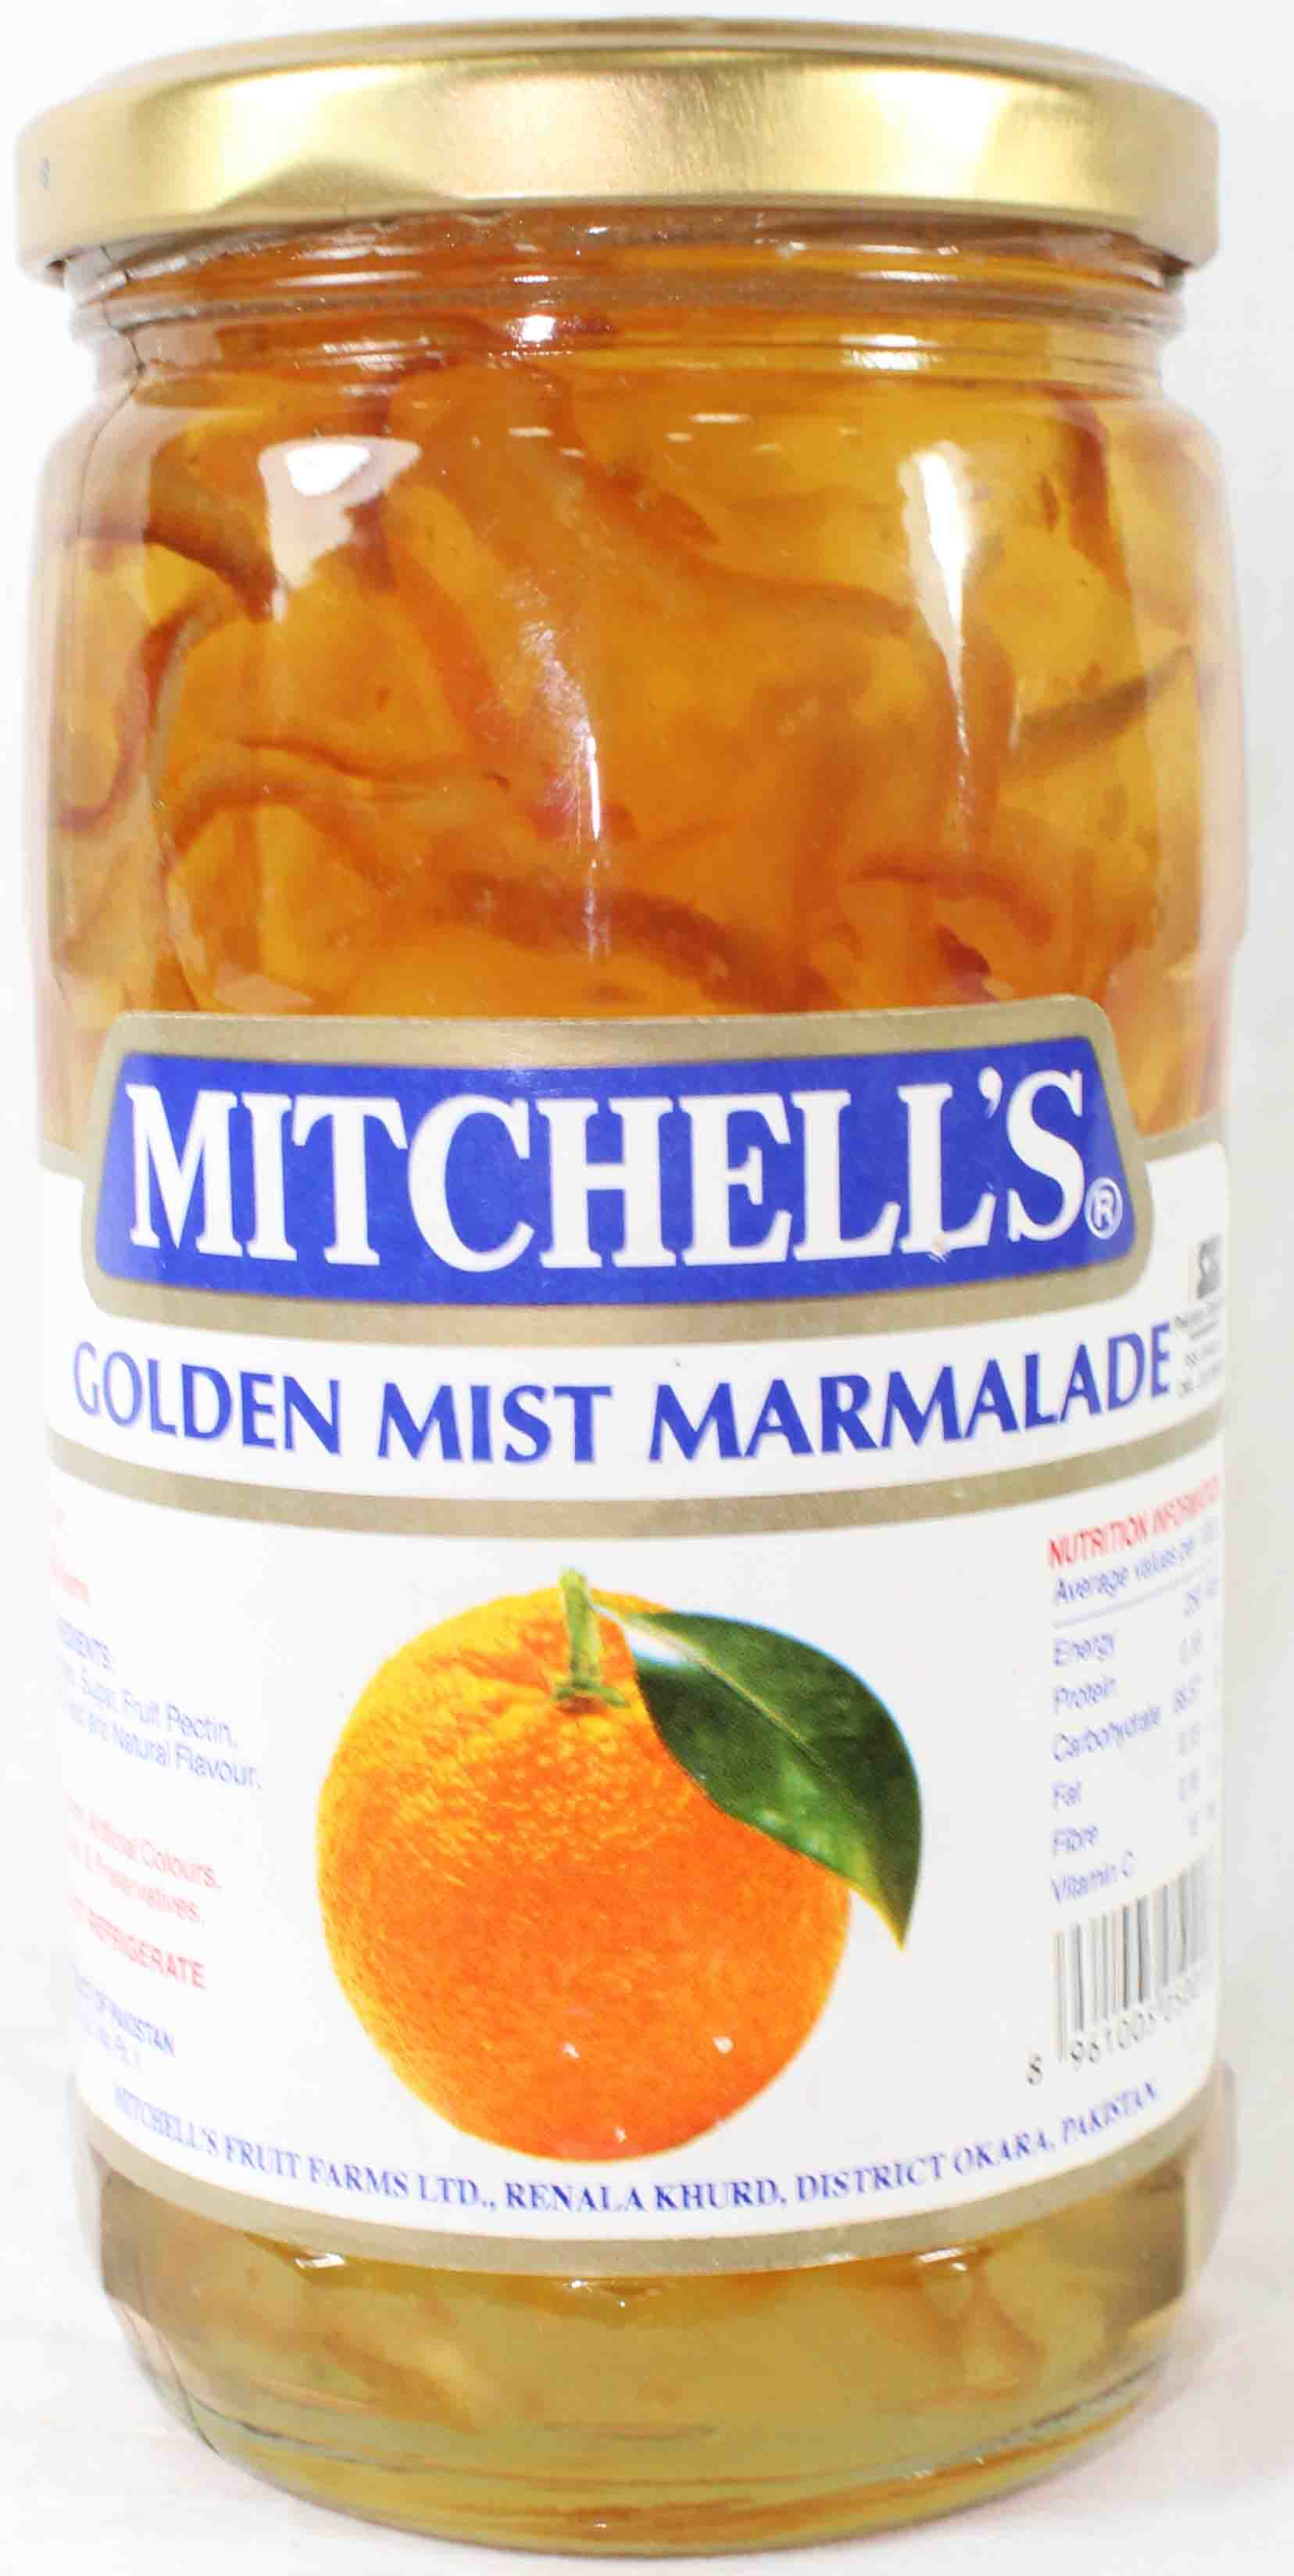 Mitchells Golden Mist Marmalade 450gm